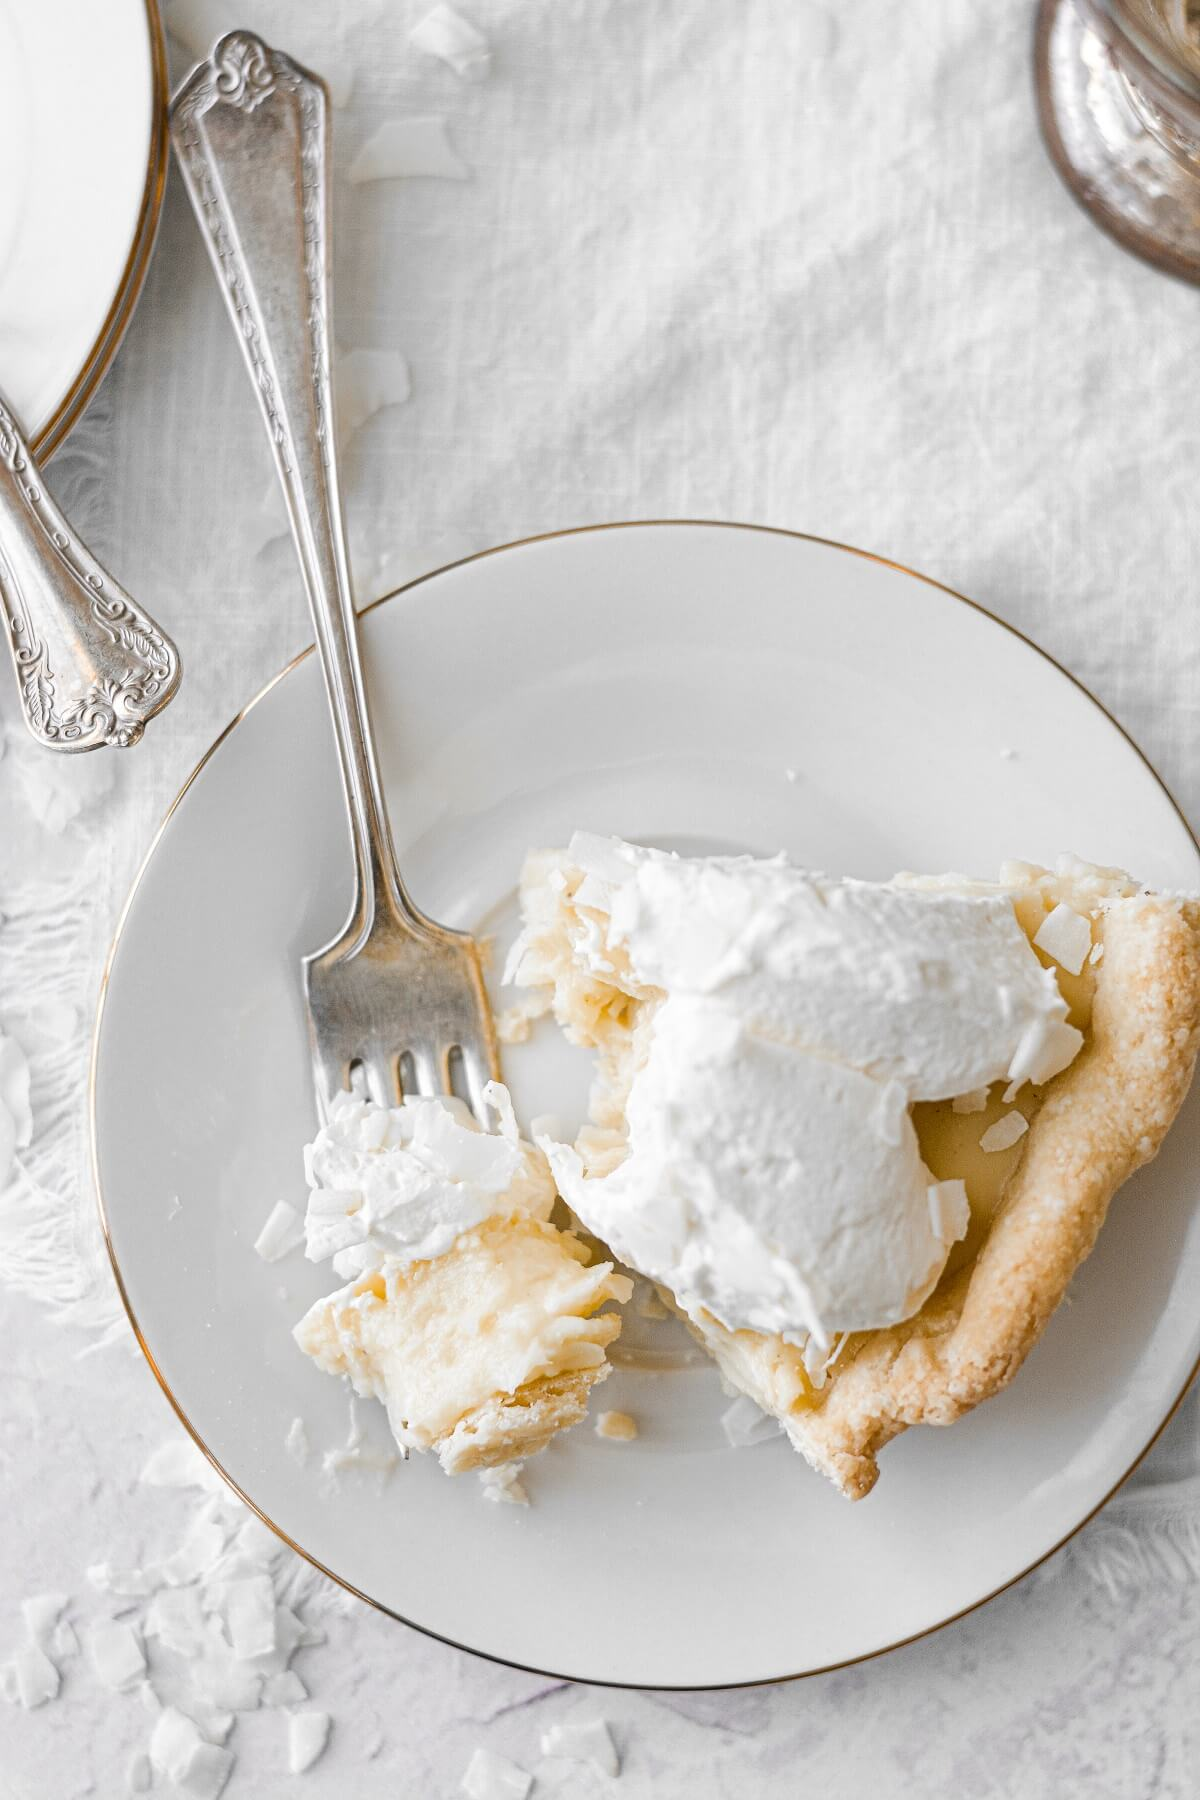 A slice of coconut cream pie with a bite taken.